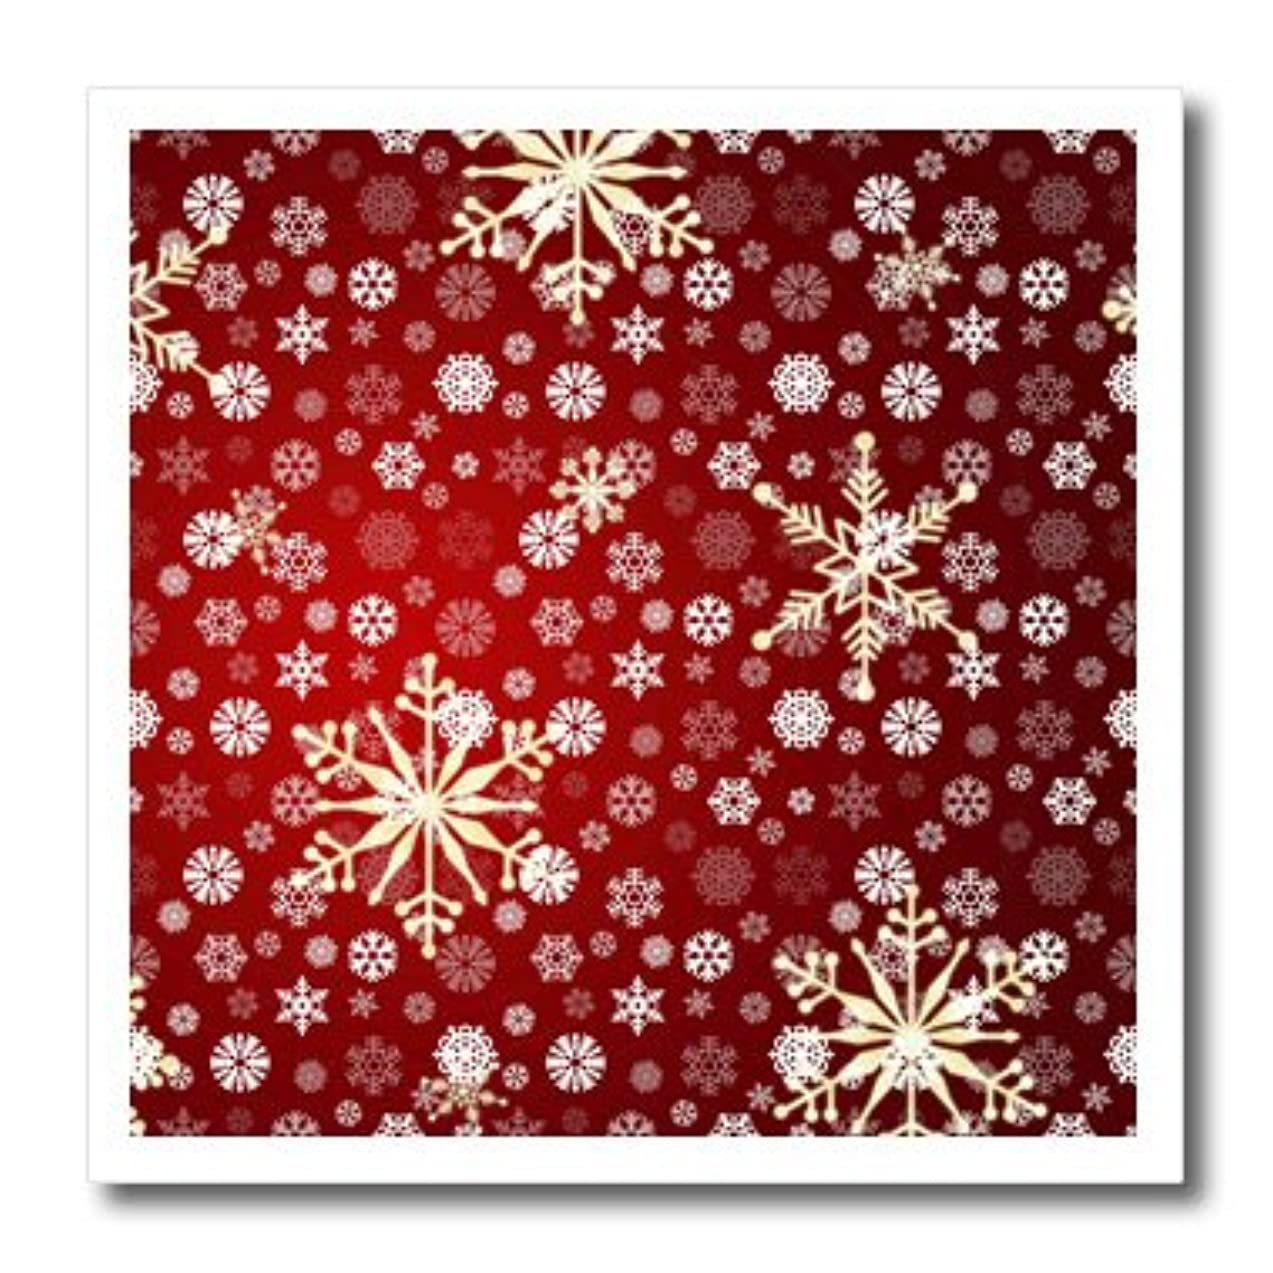 3dRose ht_59045_3 Red and White Christmas Snowflakes-Winter Art-Iron On Heat Transfer, 10 by 10